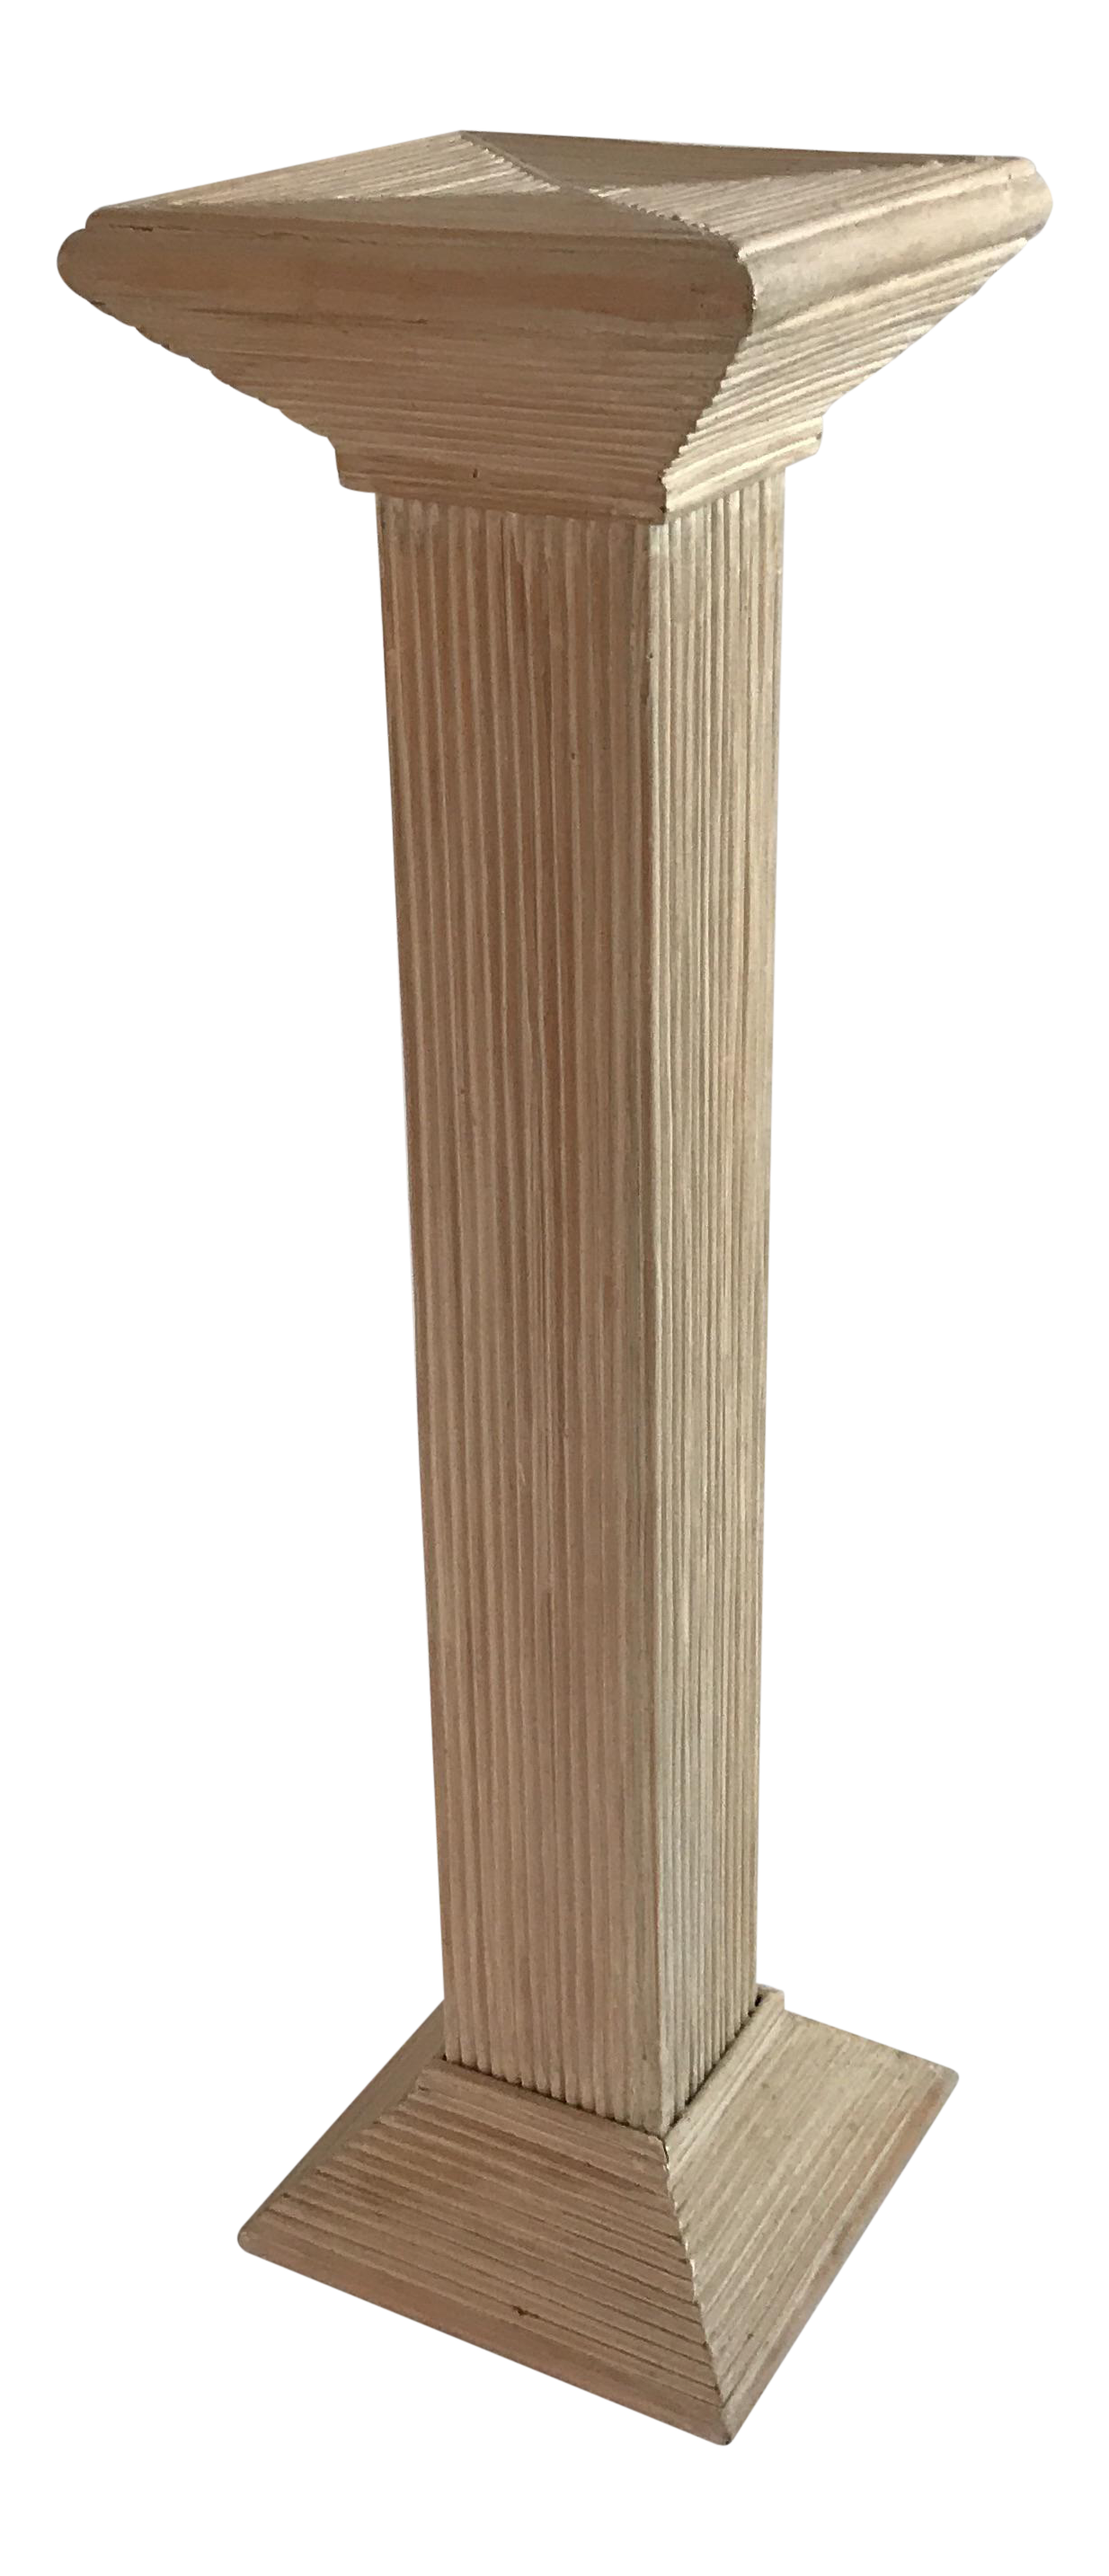 Pedestal drawing ionic. Reeded washed rattan chairish